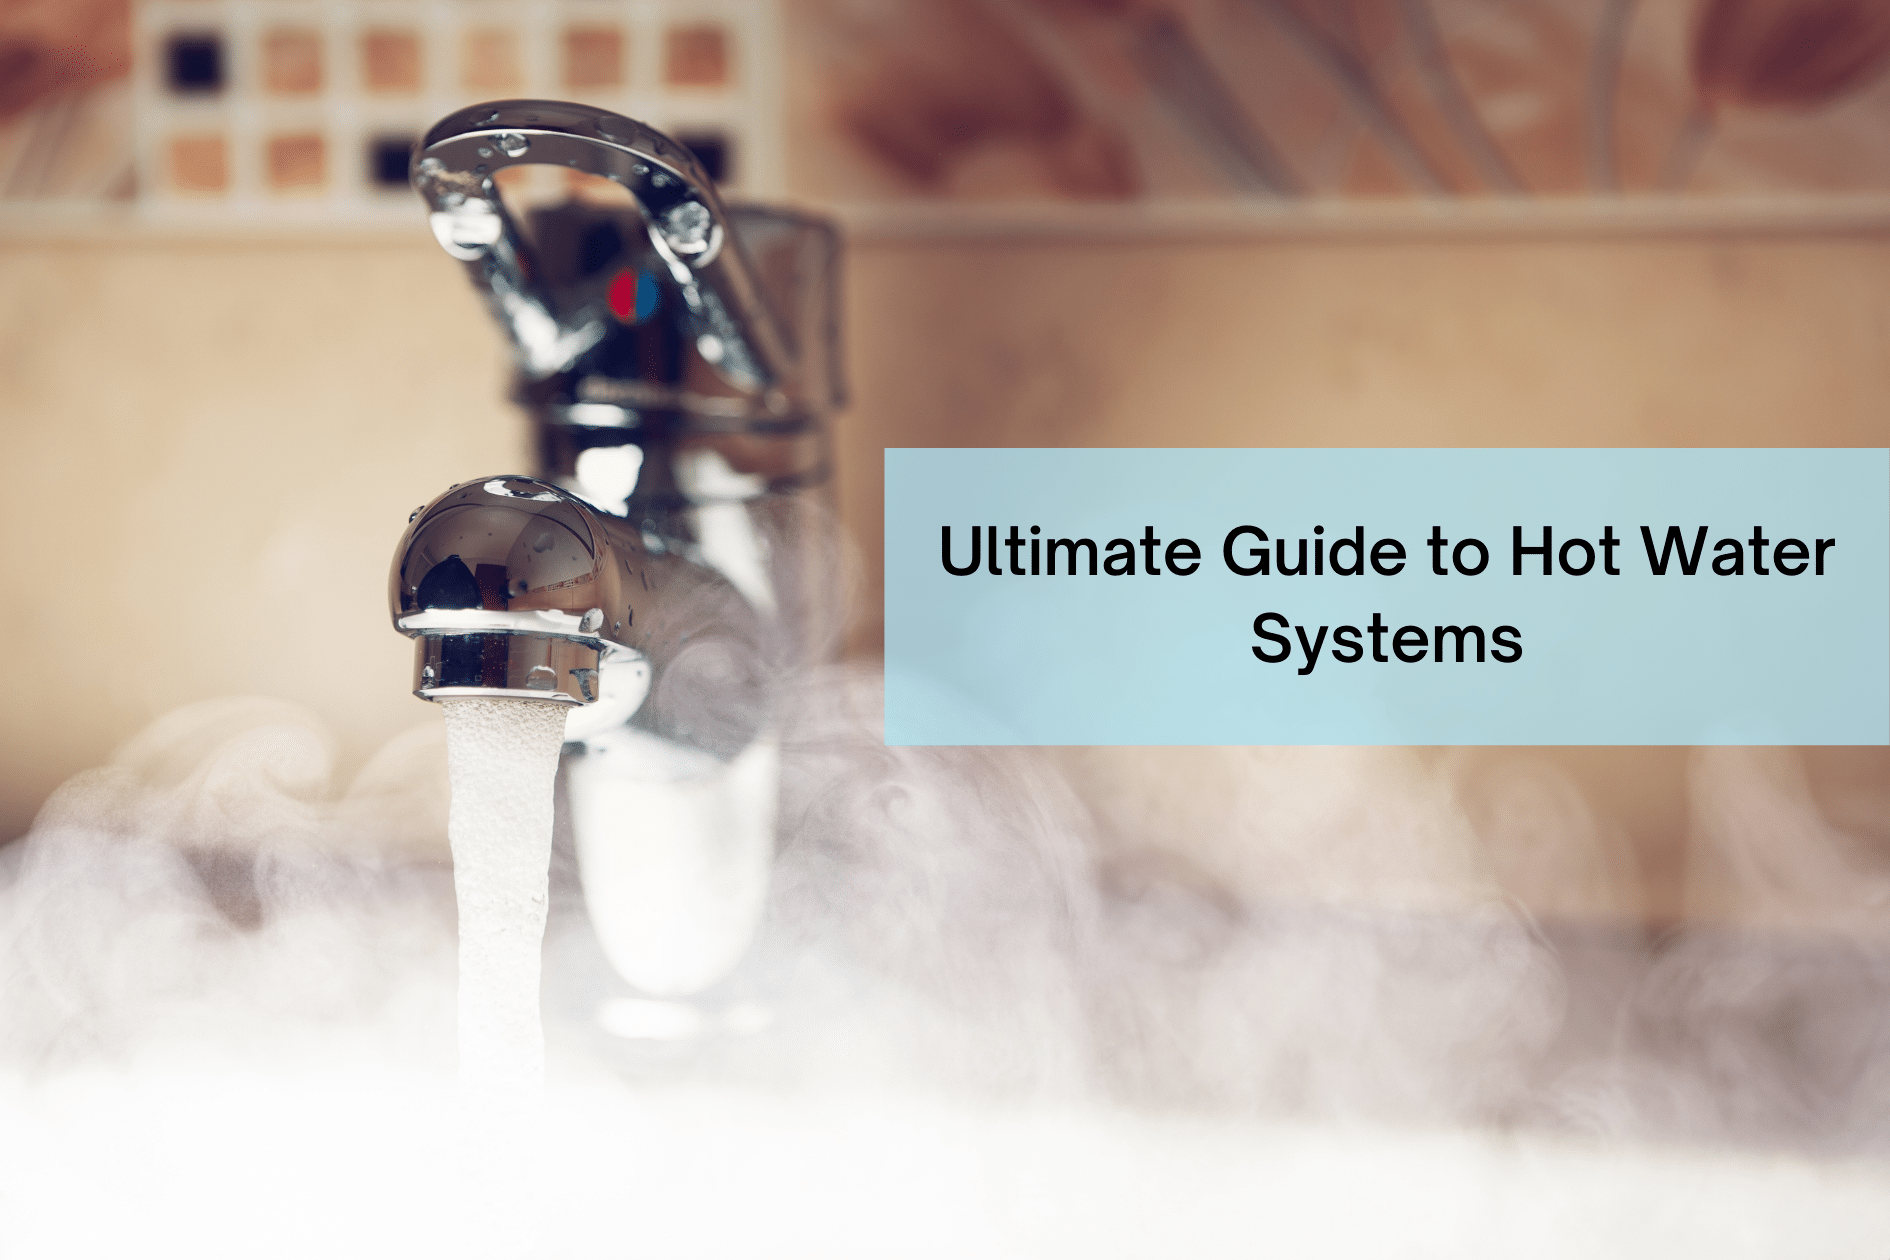 Ultimate Guide Hot Water Systems